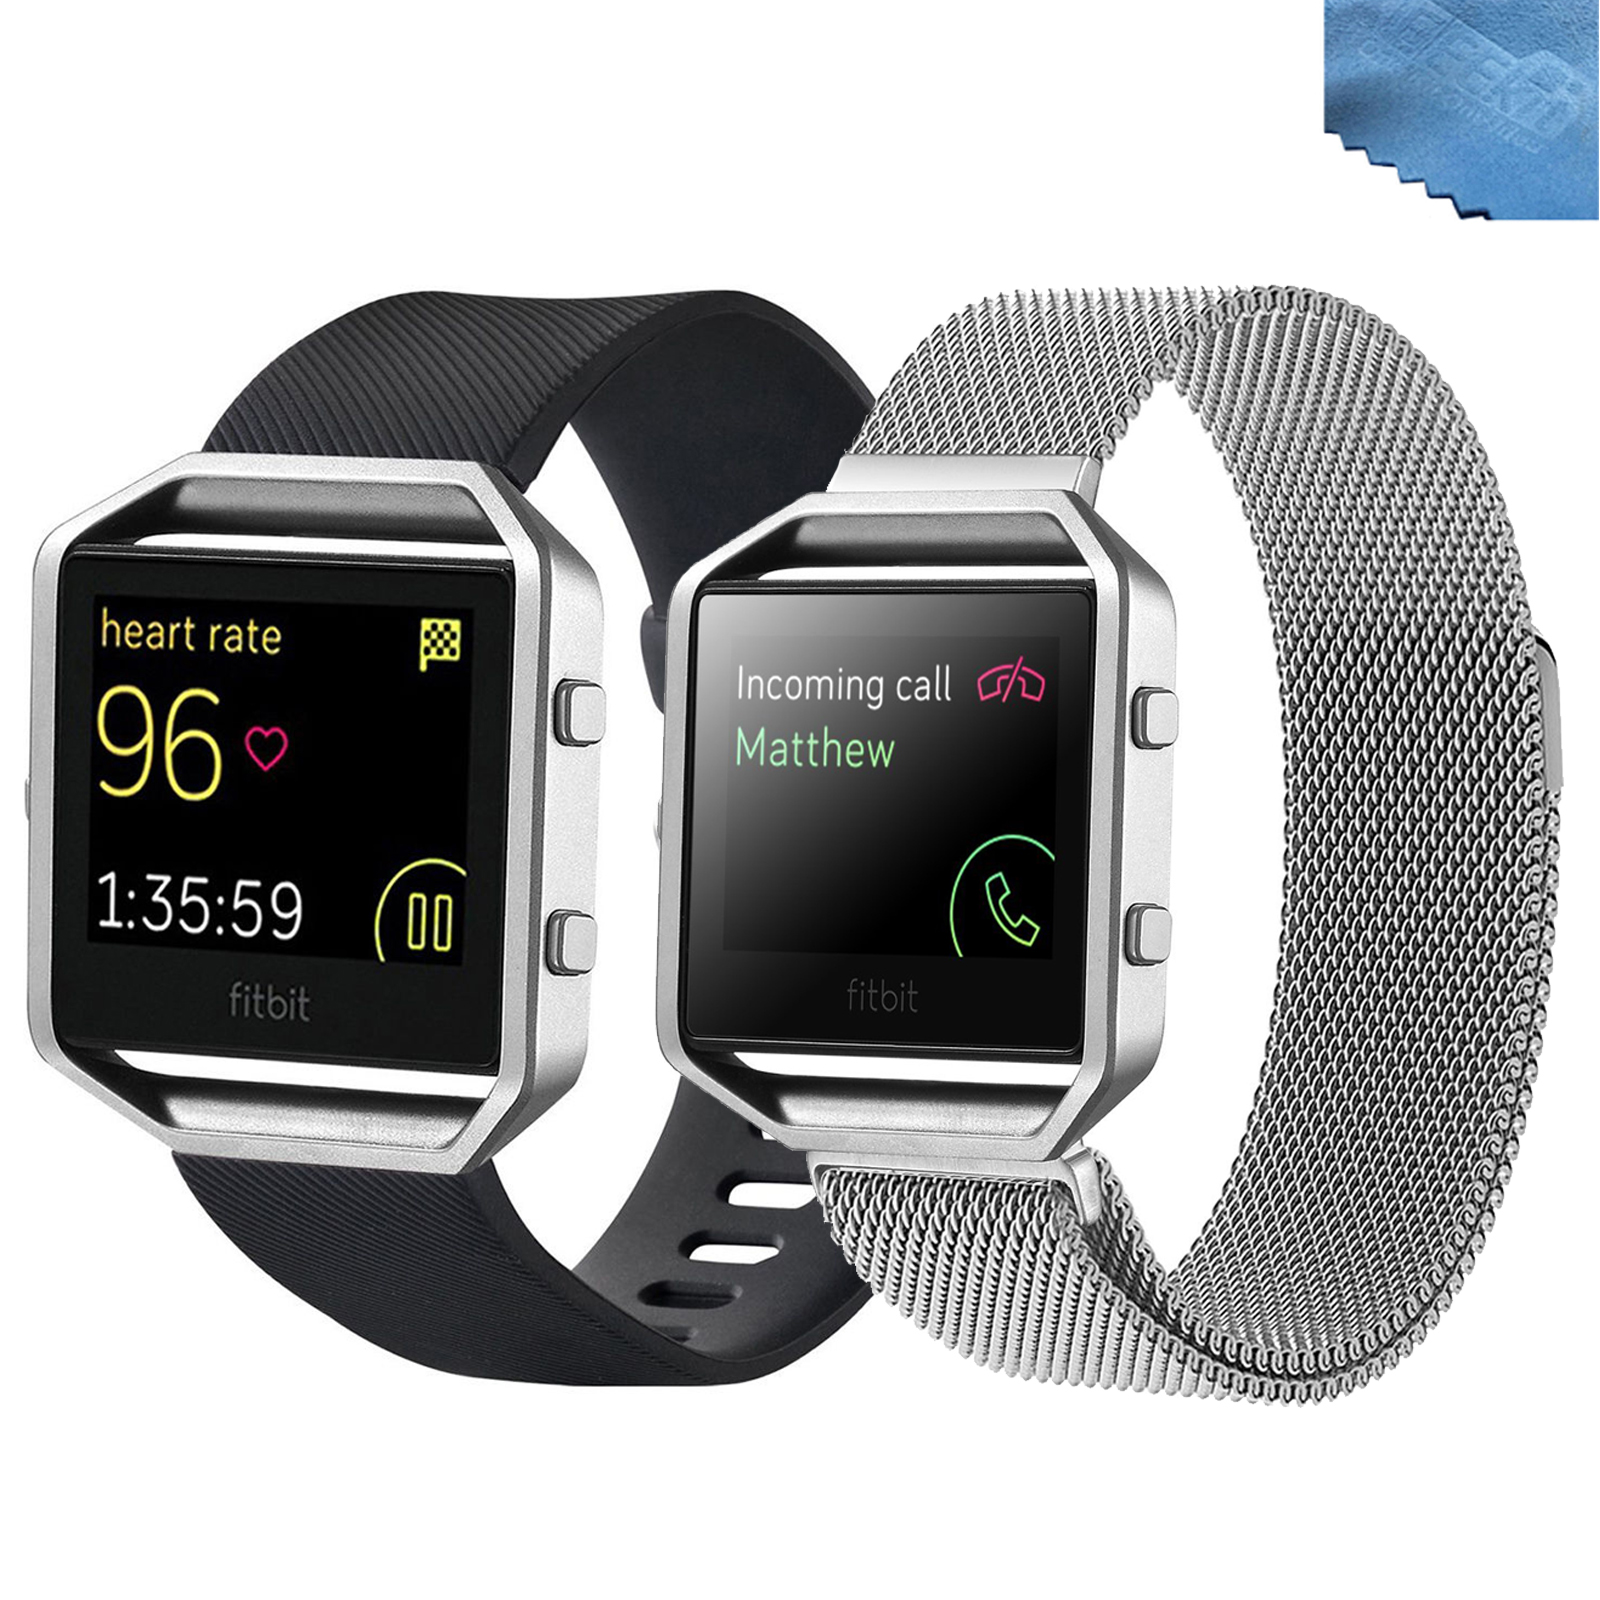 EEEKit 2in1 Kit for Fitbit Blaze, Milanese Loop Steel Mesh Bracelet Strap Band + Silicone Rubber Watch Band Strap